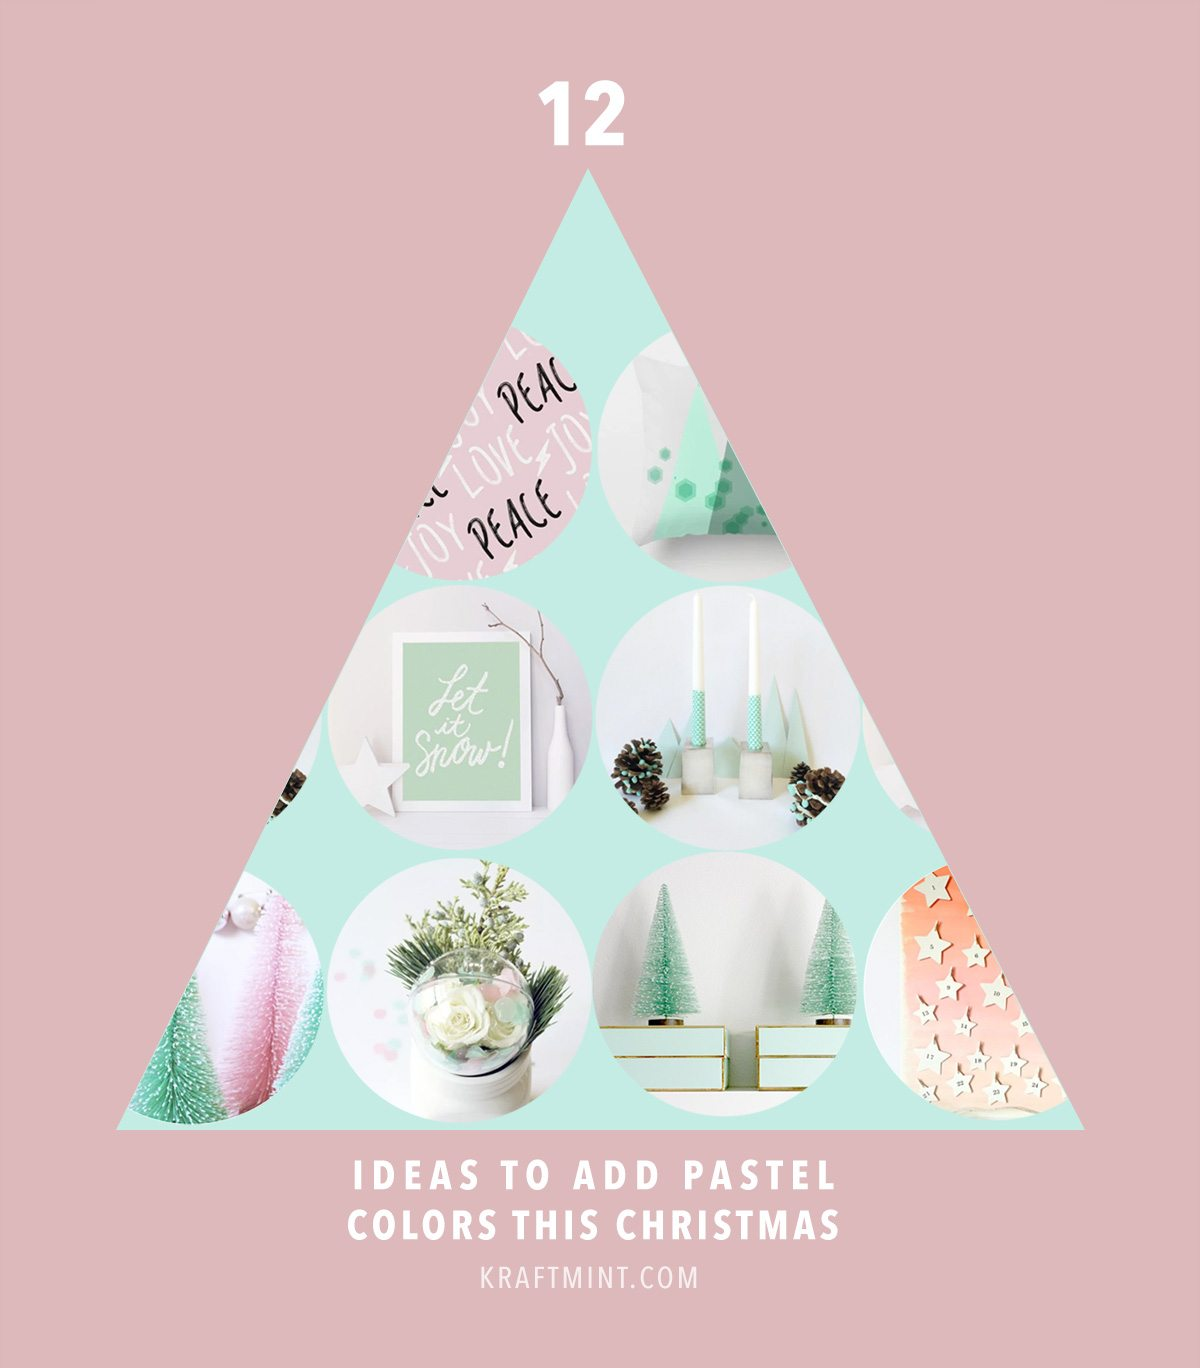 12 Ideas to decorate with pastels colors this Christmas